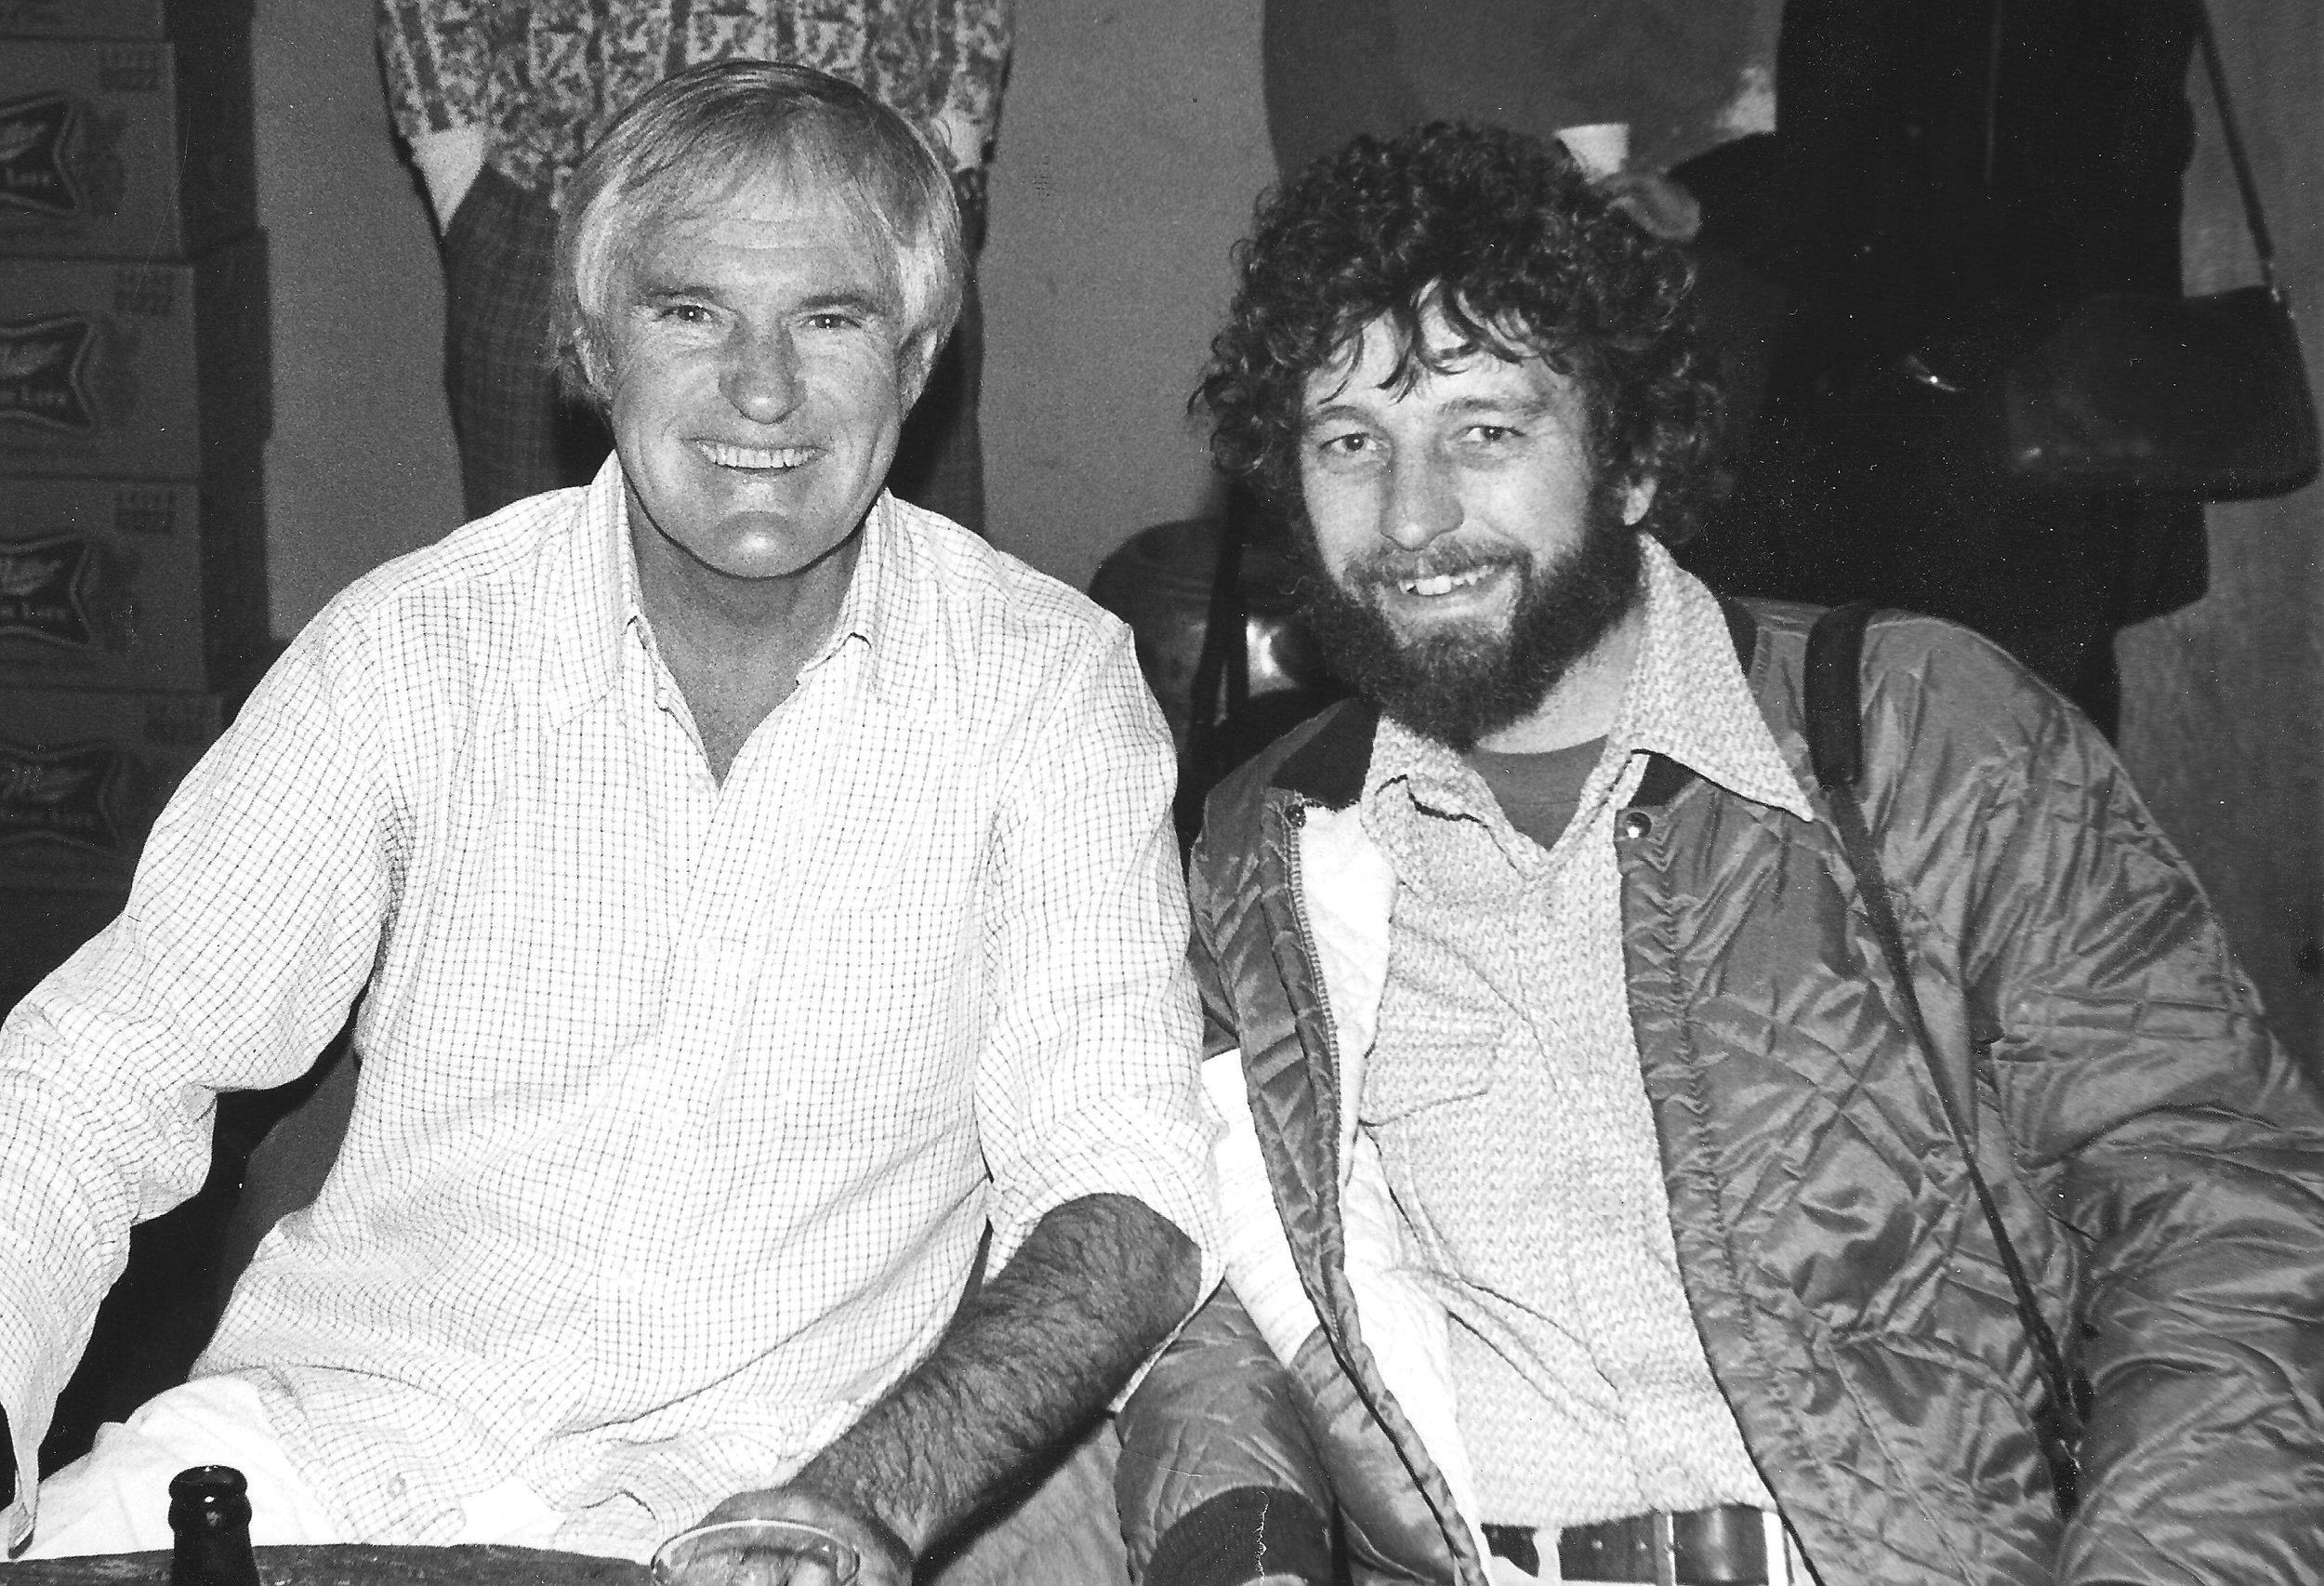 Mike (right) with Timothy Leary